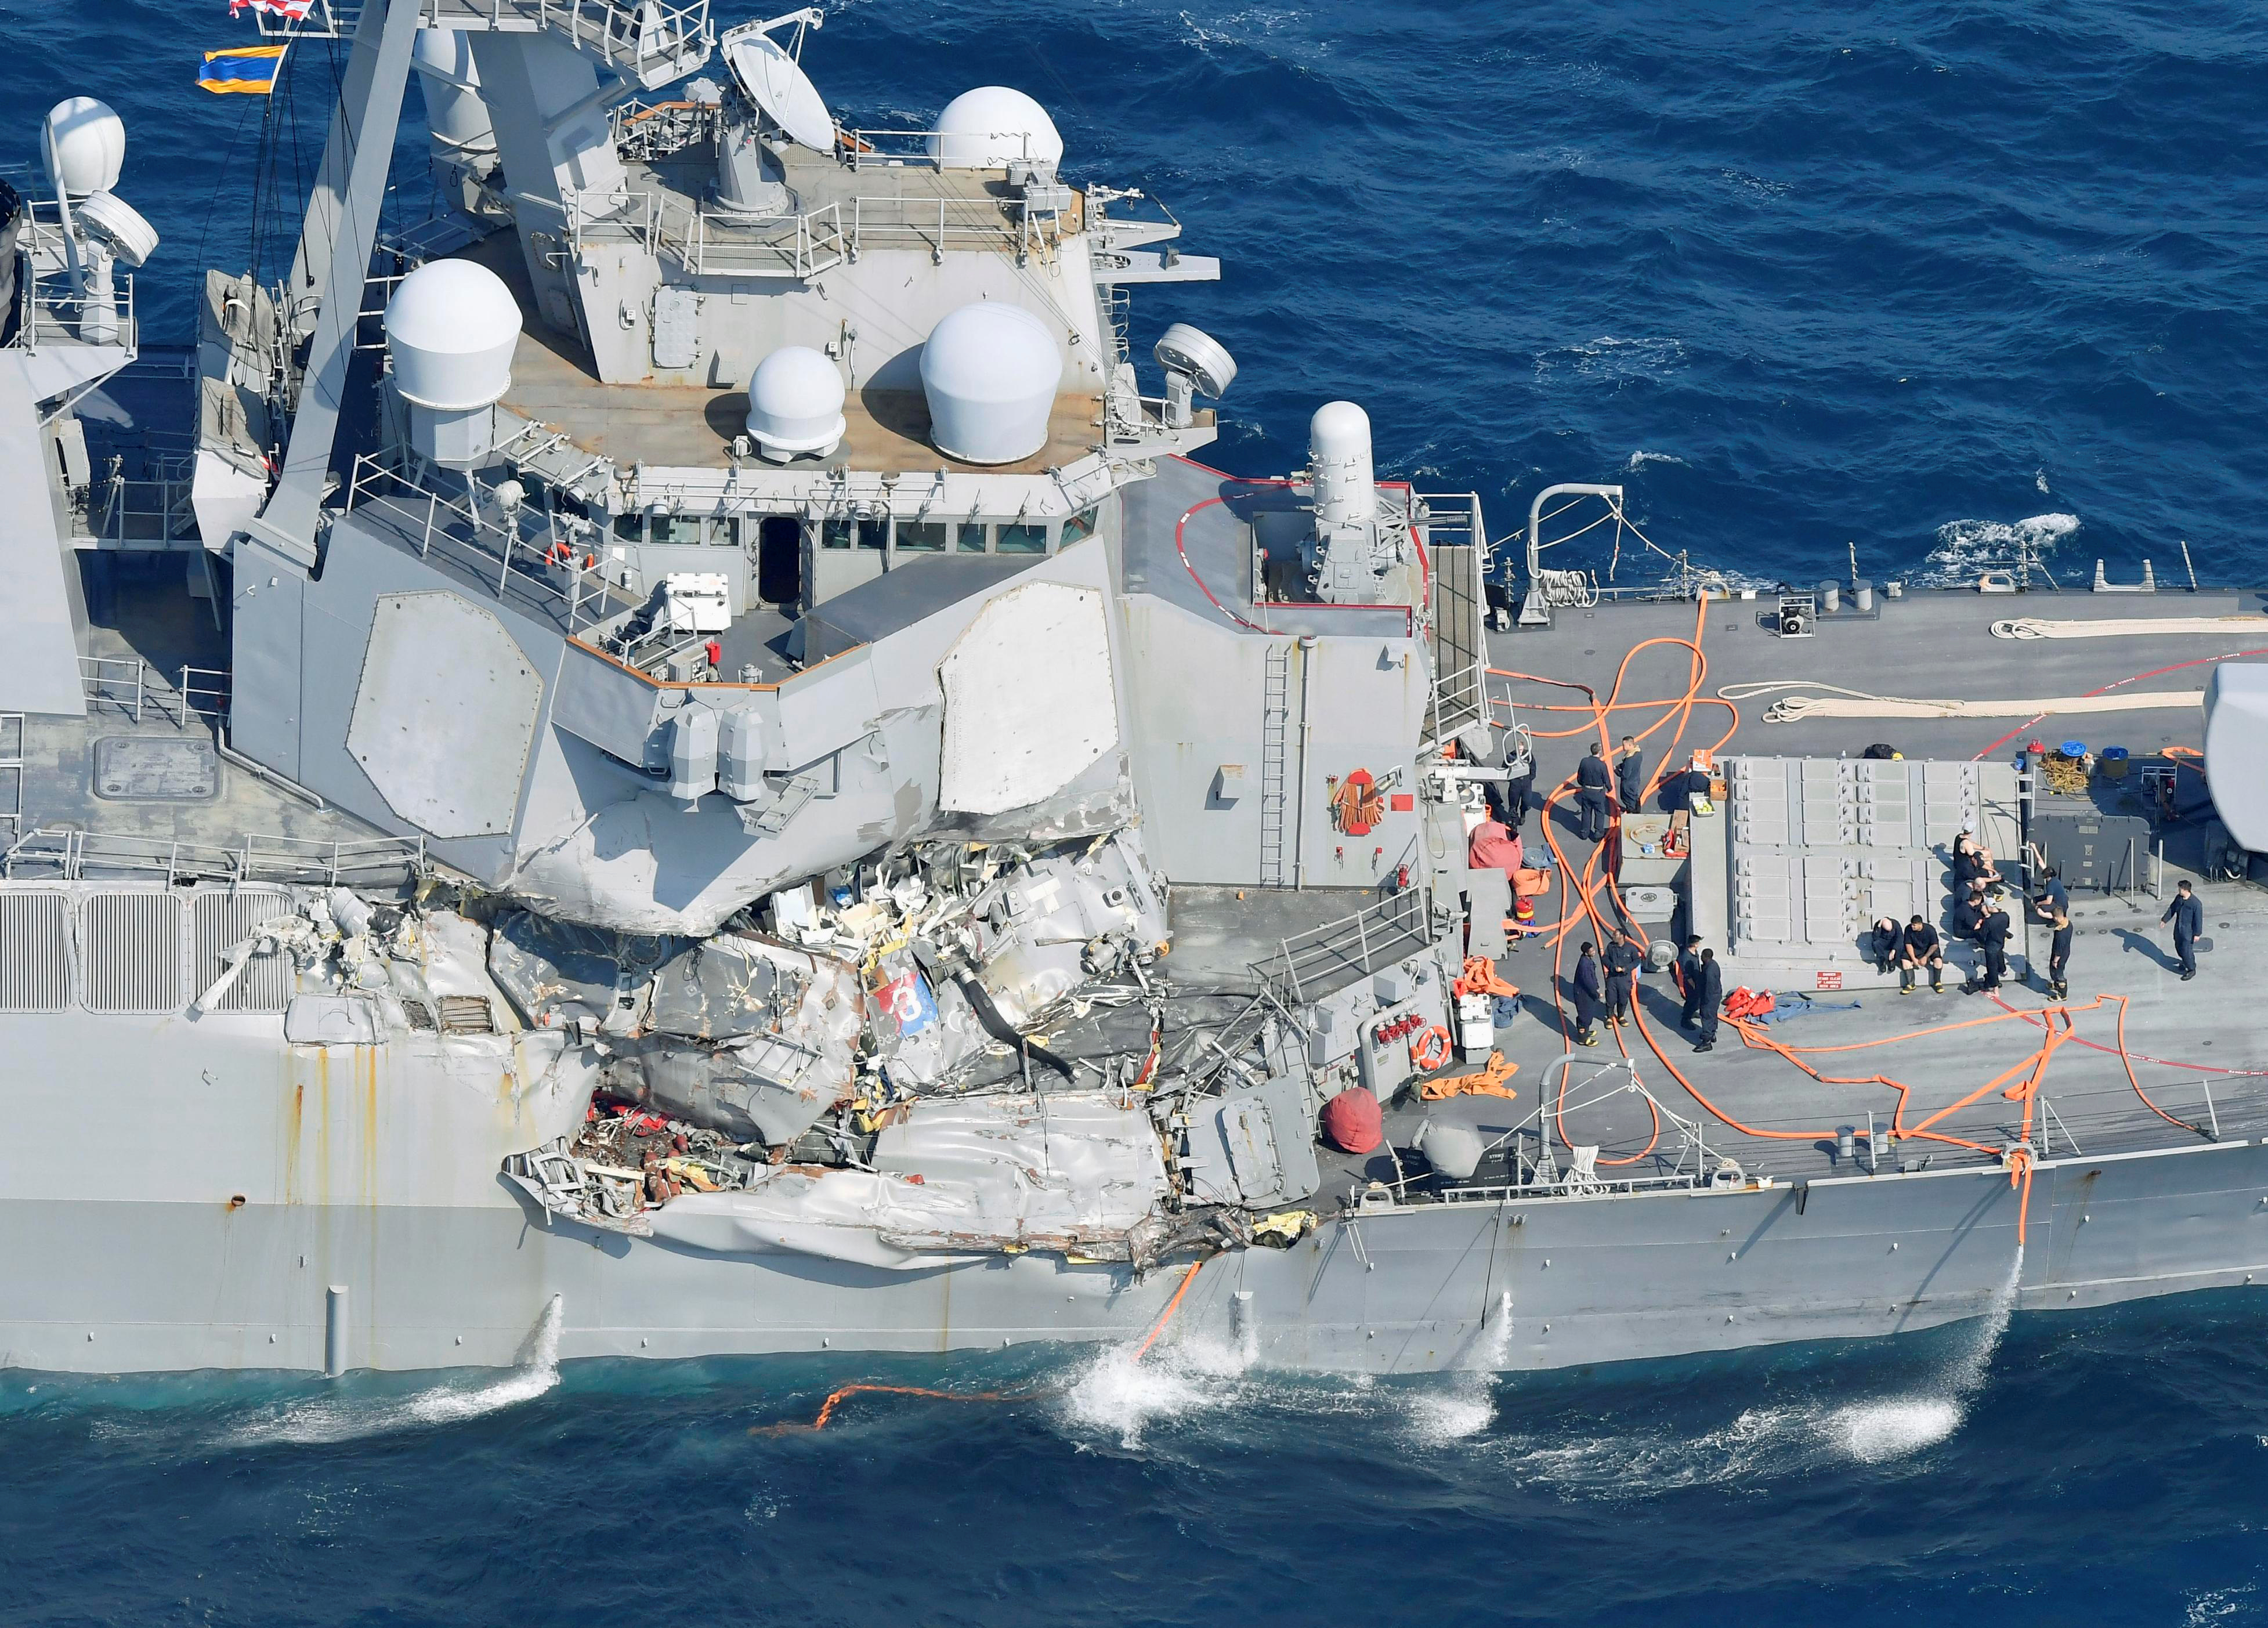 The Arleigh Burke-class guided-missile destroyer USS Fitzgerald, damaged by colliding with a Philippine-flagged merchant vessel, is seen off Shimoda, Japan, June 17, 2017, in this photo taken by Kyodo.